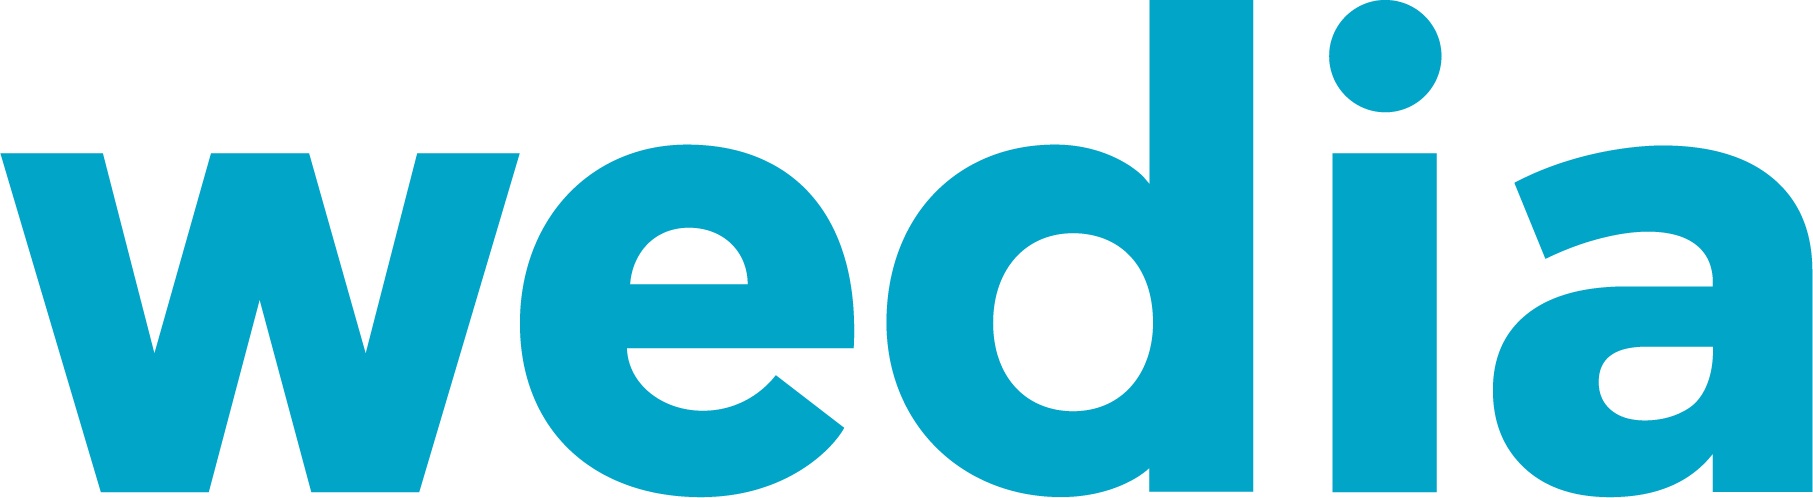 Wedia Digital Asset Management (DAM) logo